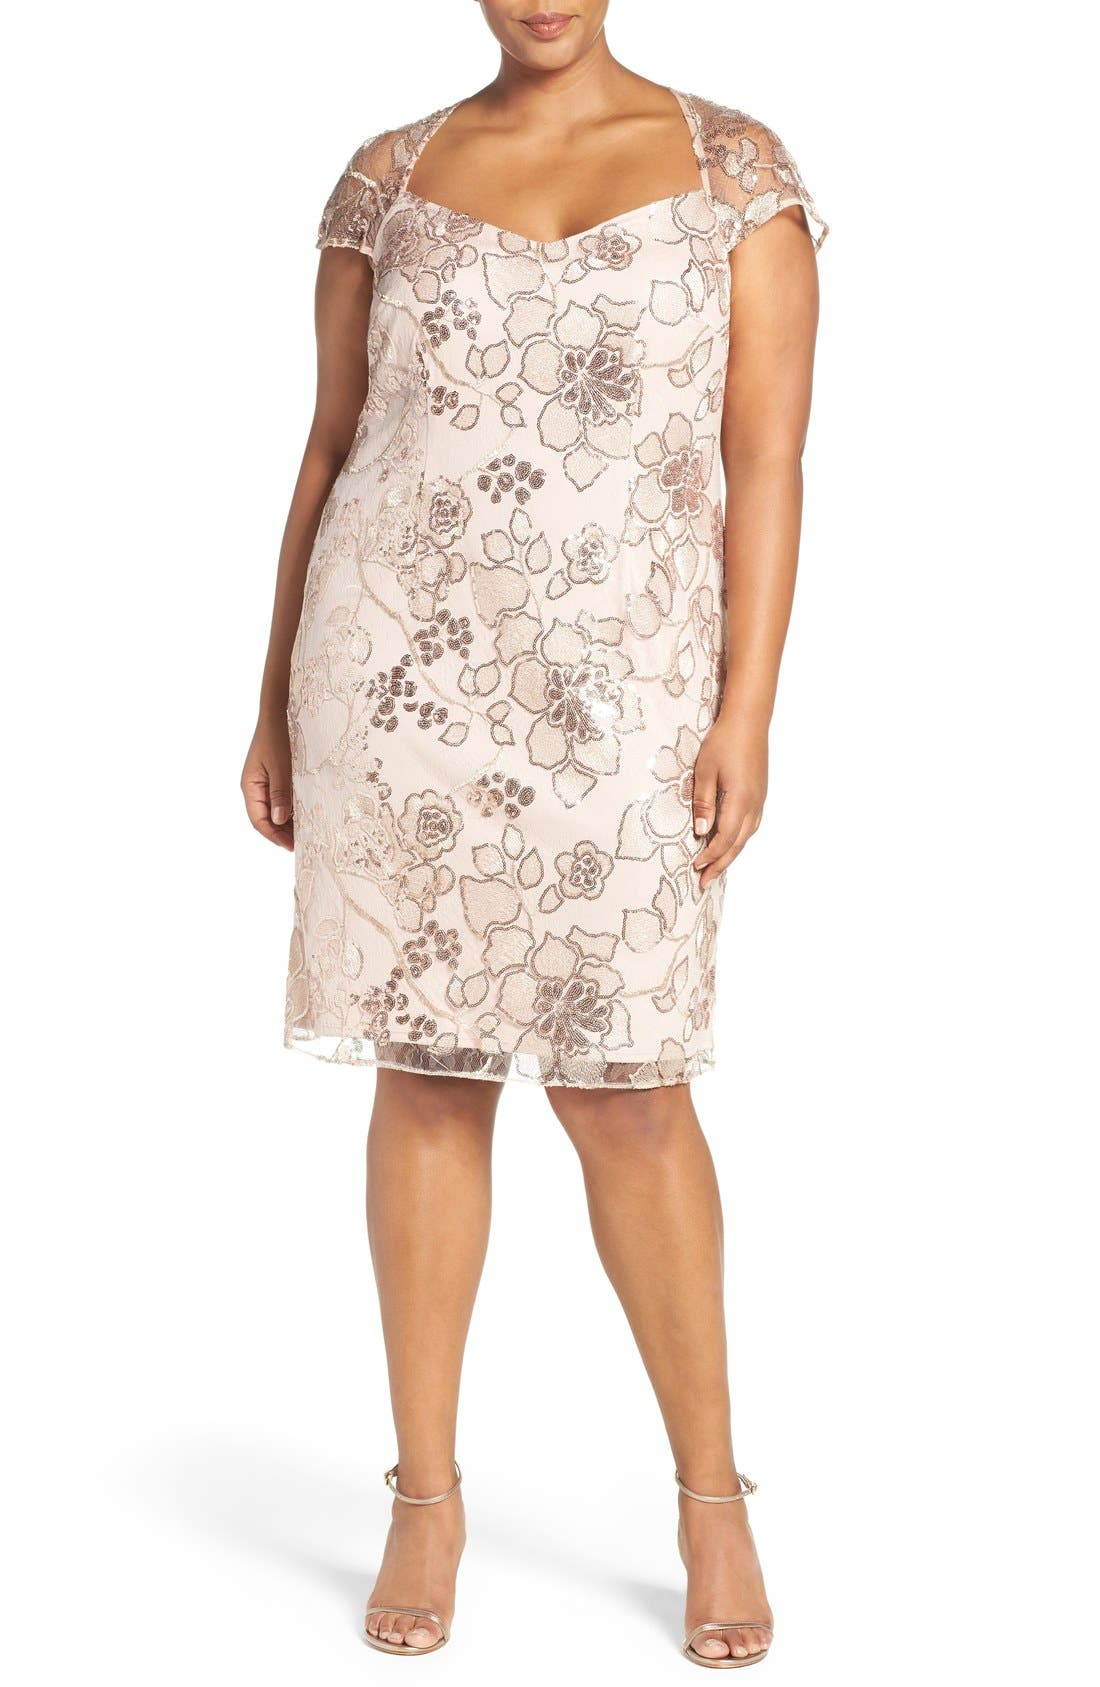 Brianna Embellished Embroidered Lace Cocktail Dress (Plus Size)